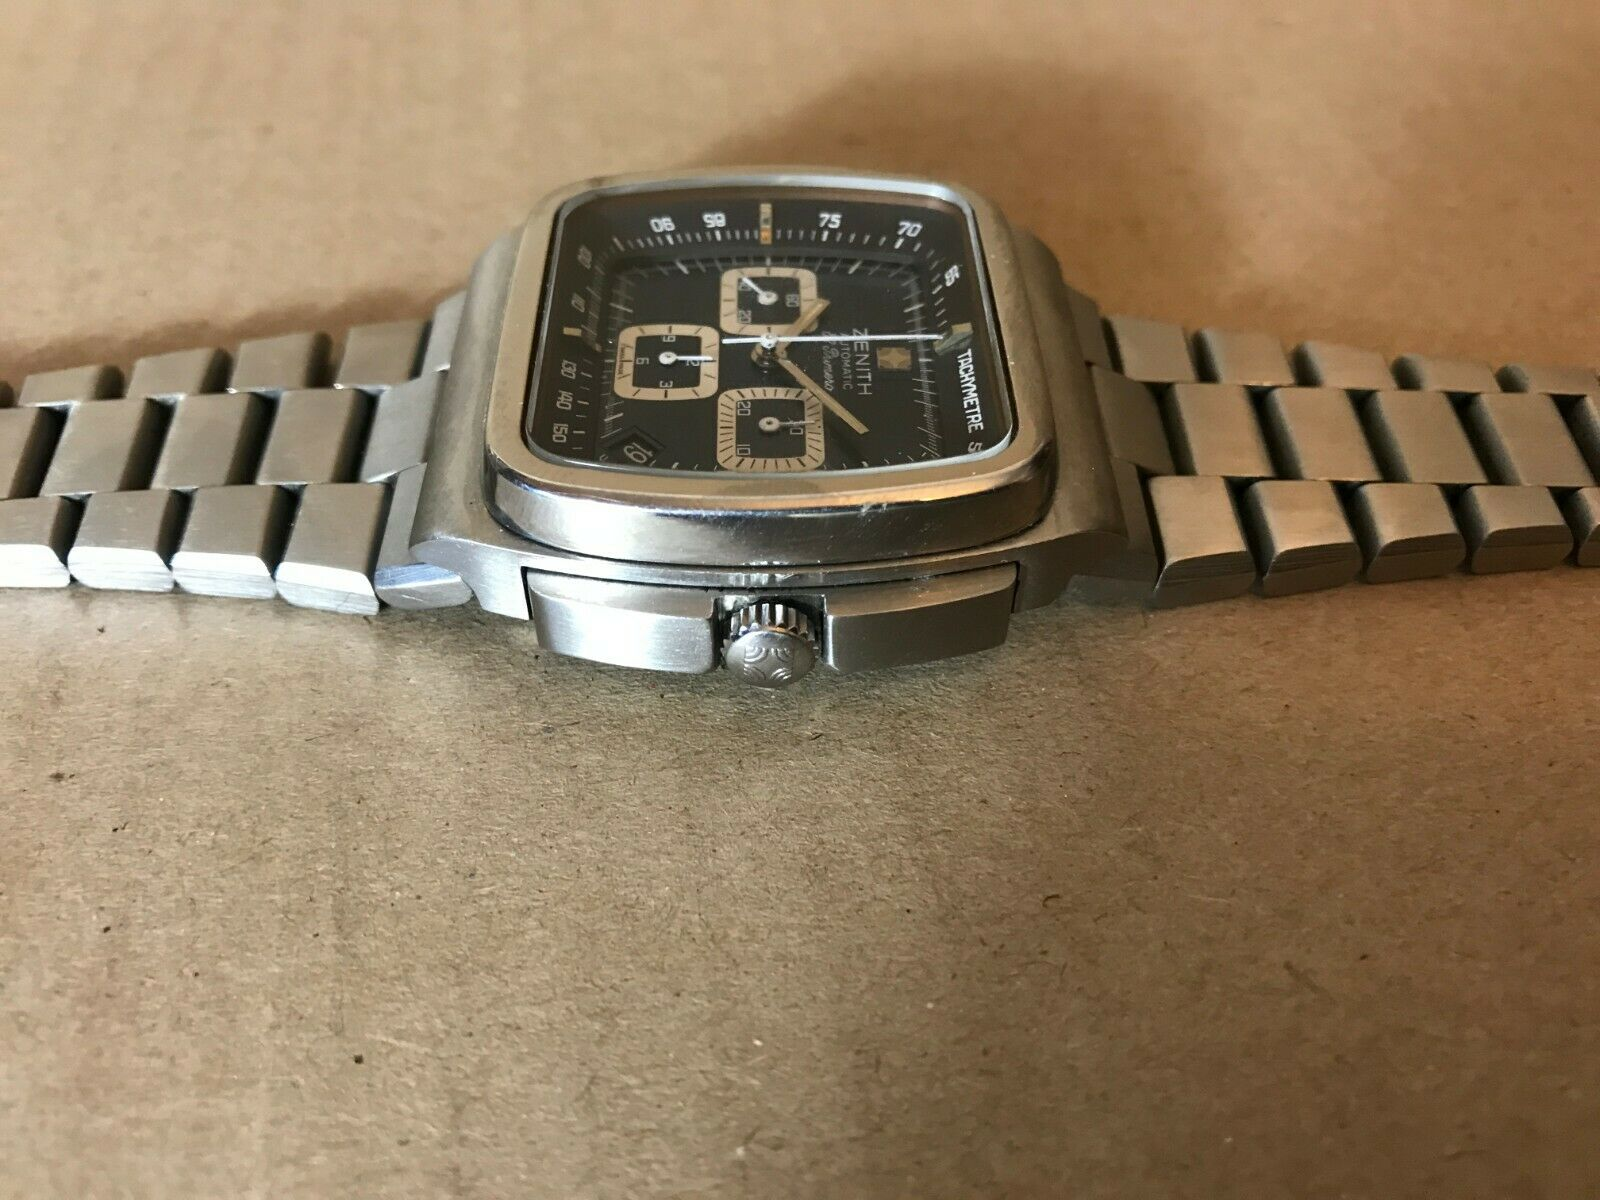 Watch picture 1